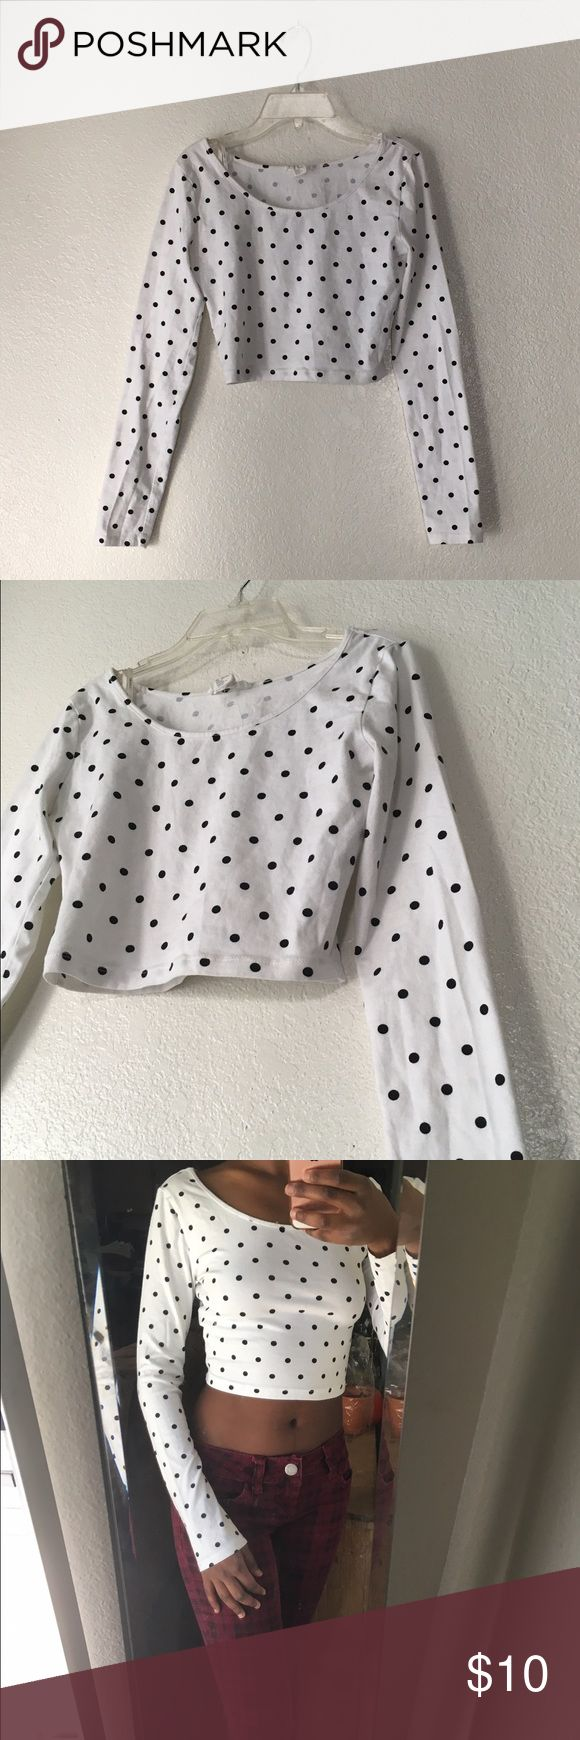 Forever 21 Black and Cream Polka Dot Crop Top Forever 21 Black and Cream polka dot crop top. Great condition, worn once. There's a tiny barely noticeable stain on the back of the sleeve (pictured). Size M. Forever 21 Tops Crop Tops